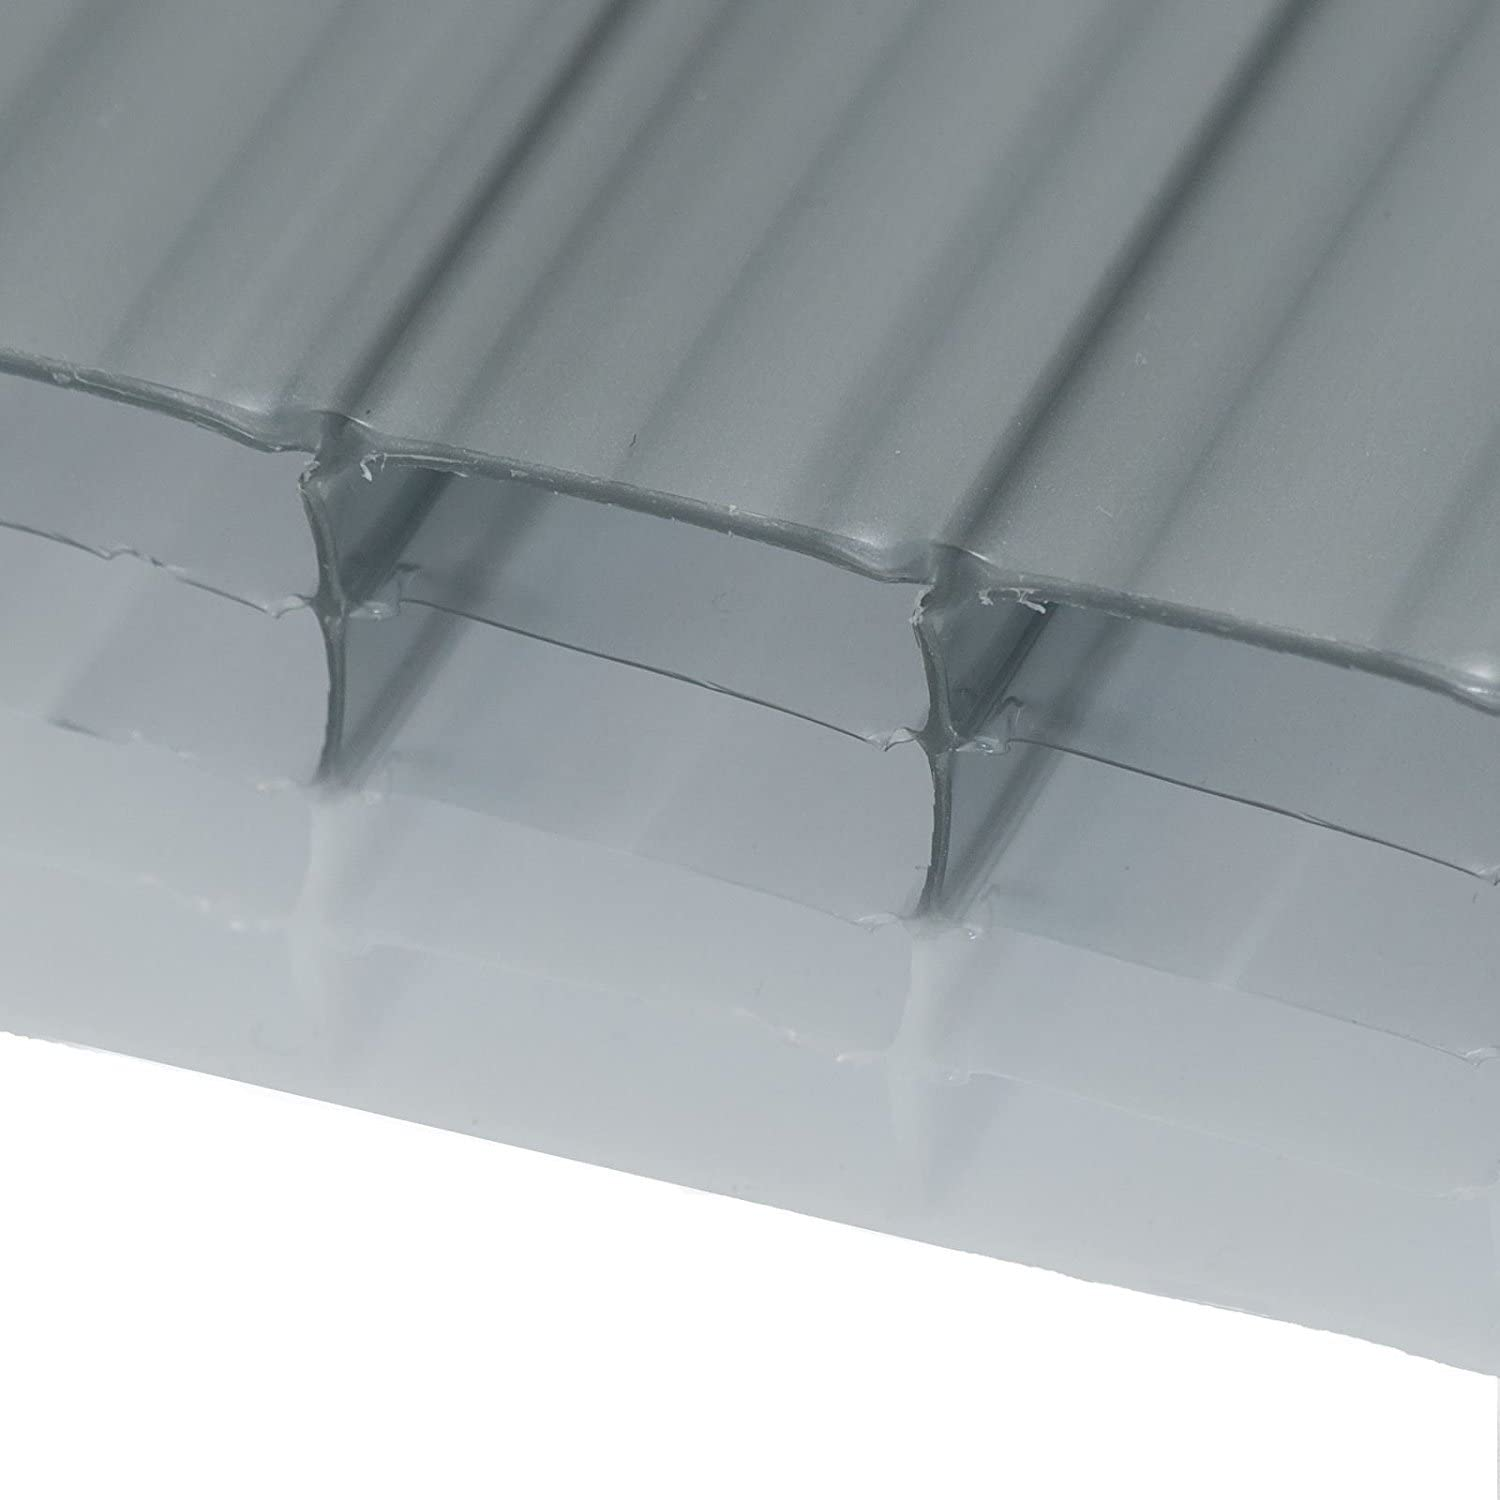 Heatguard Opal, 1.5 x 2m (Width x Length) 25mm DualTinted Polycarbonate Sheets Poly Plastic Roof Panel for Leanto Canopy Conservatory